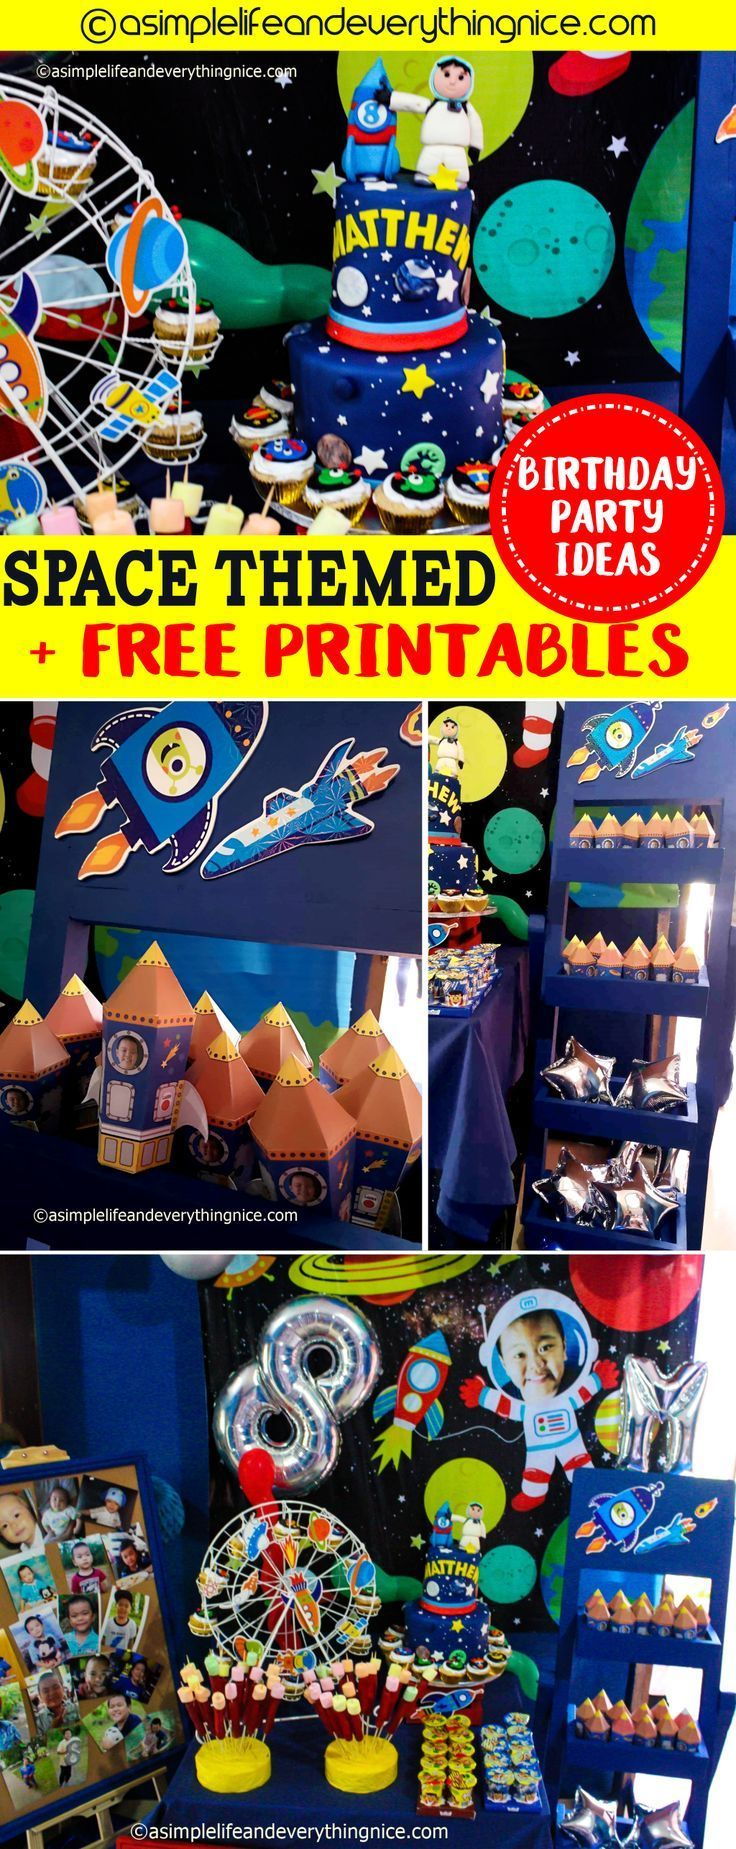 A Space Themed Birthday Party : Matthews Outer Space 8th Birthday Party with Free Printables #outerspaceparty A Space Themed Birthday Party : Matthews Outer Space 8th Birthday Party with Free Printables #outerspaceparty